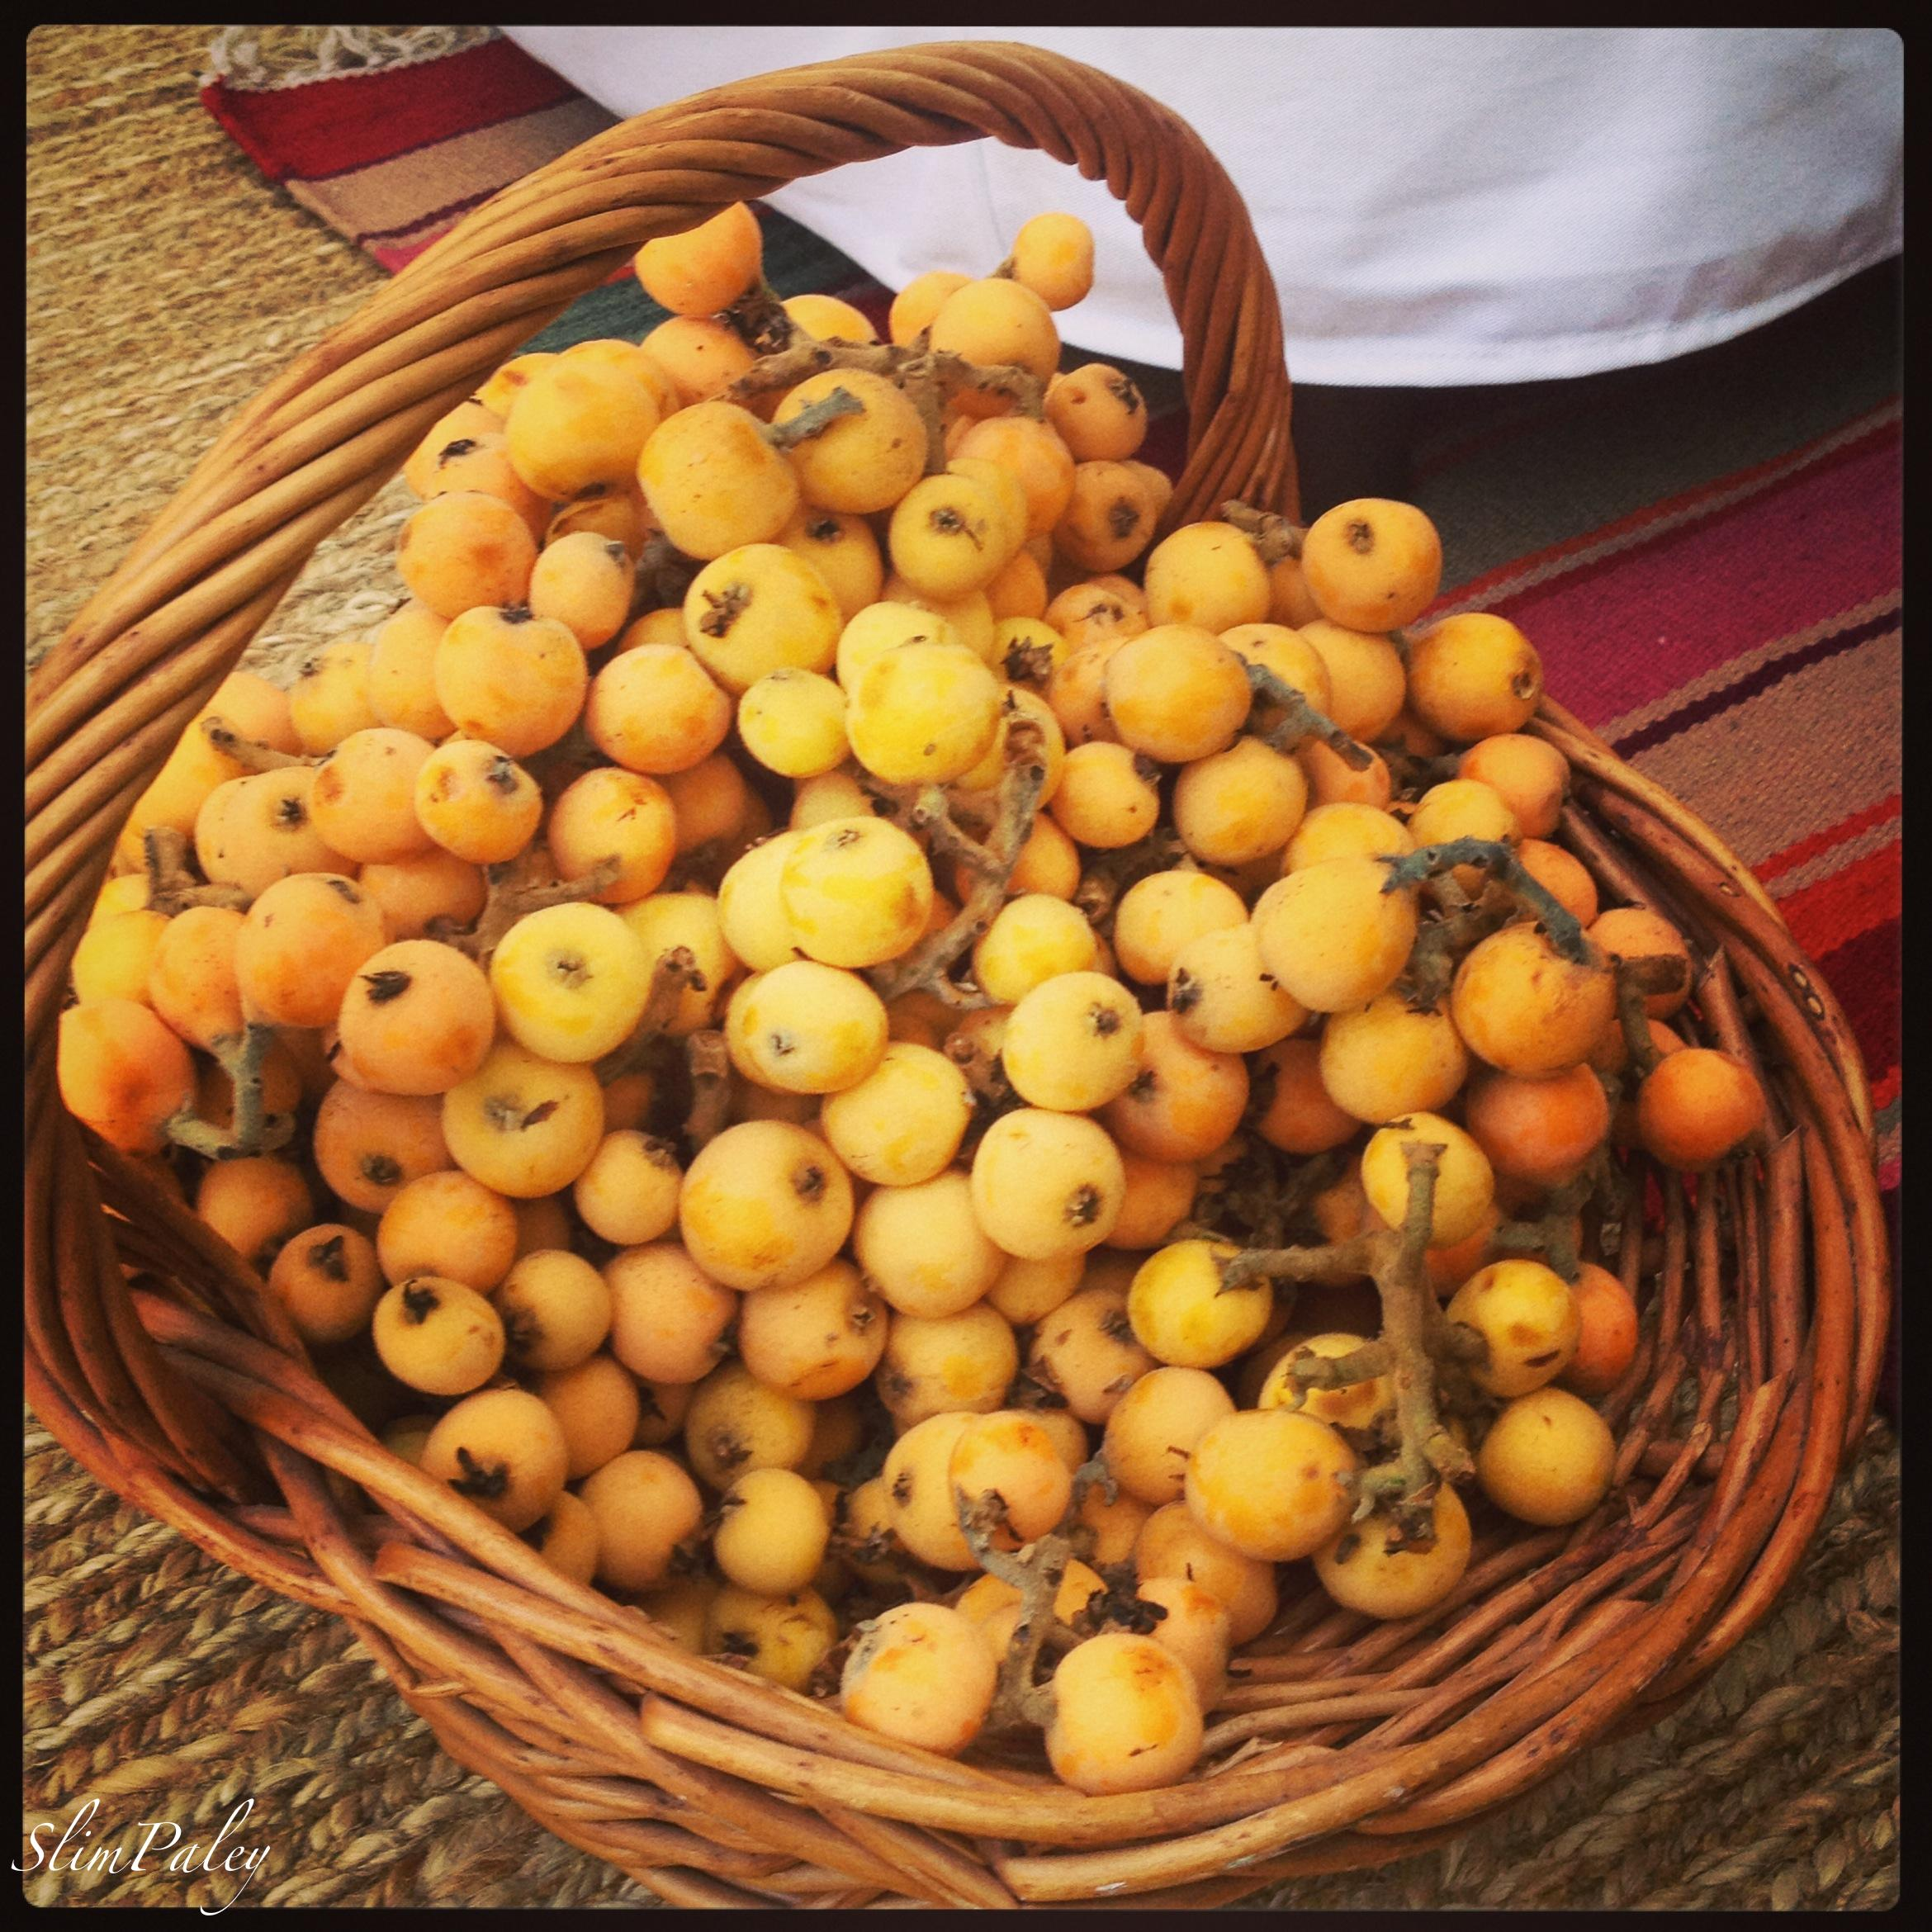 loquats, Slim Paley